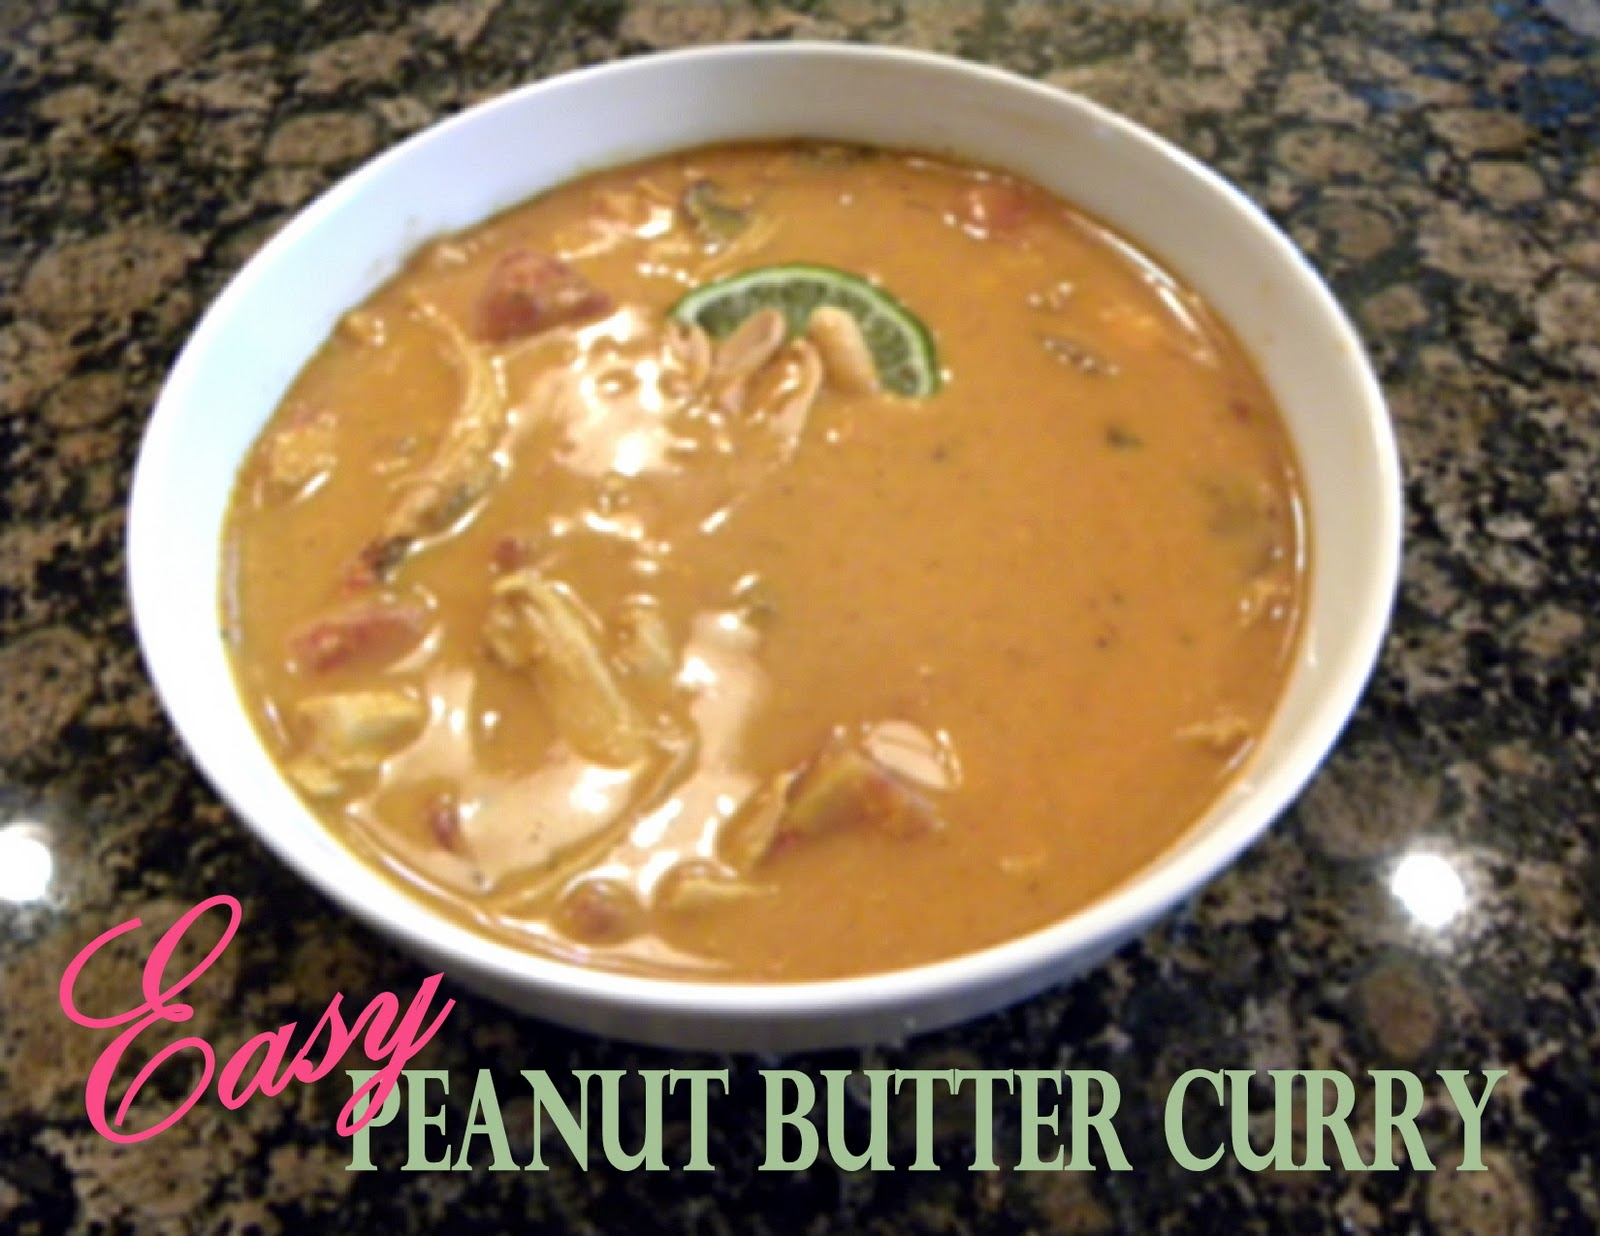 Chicken + Peanut Butter = Delish!